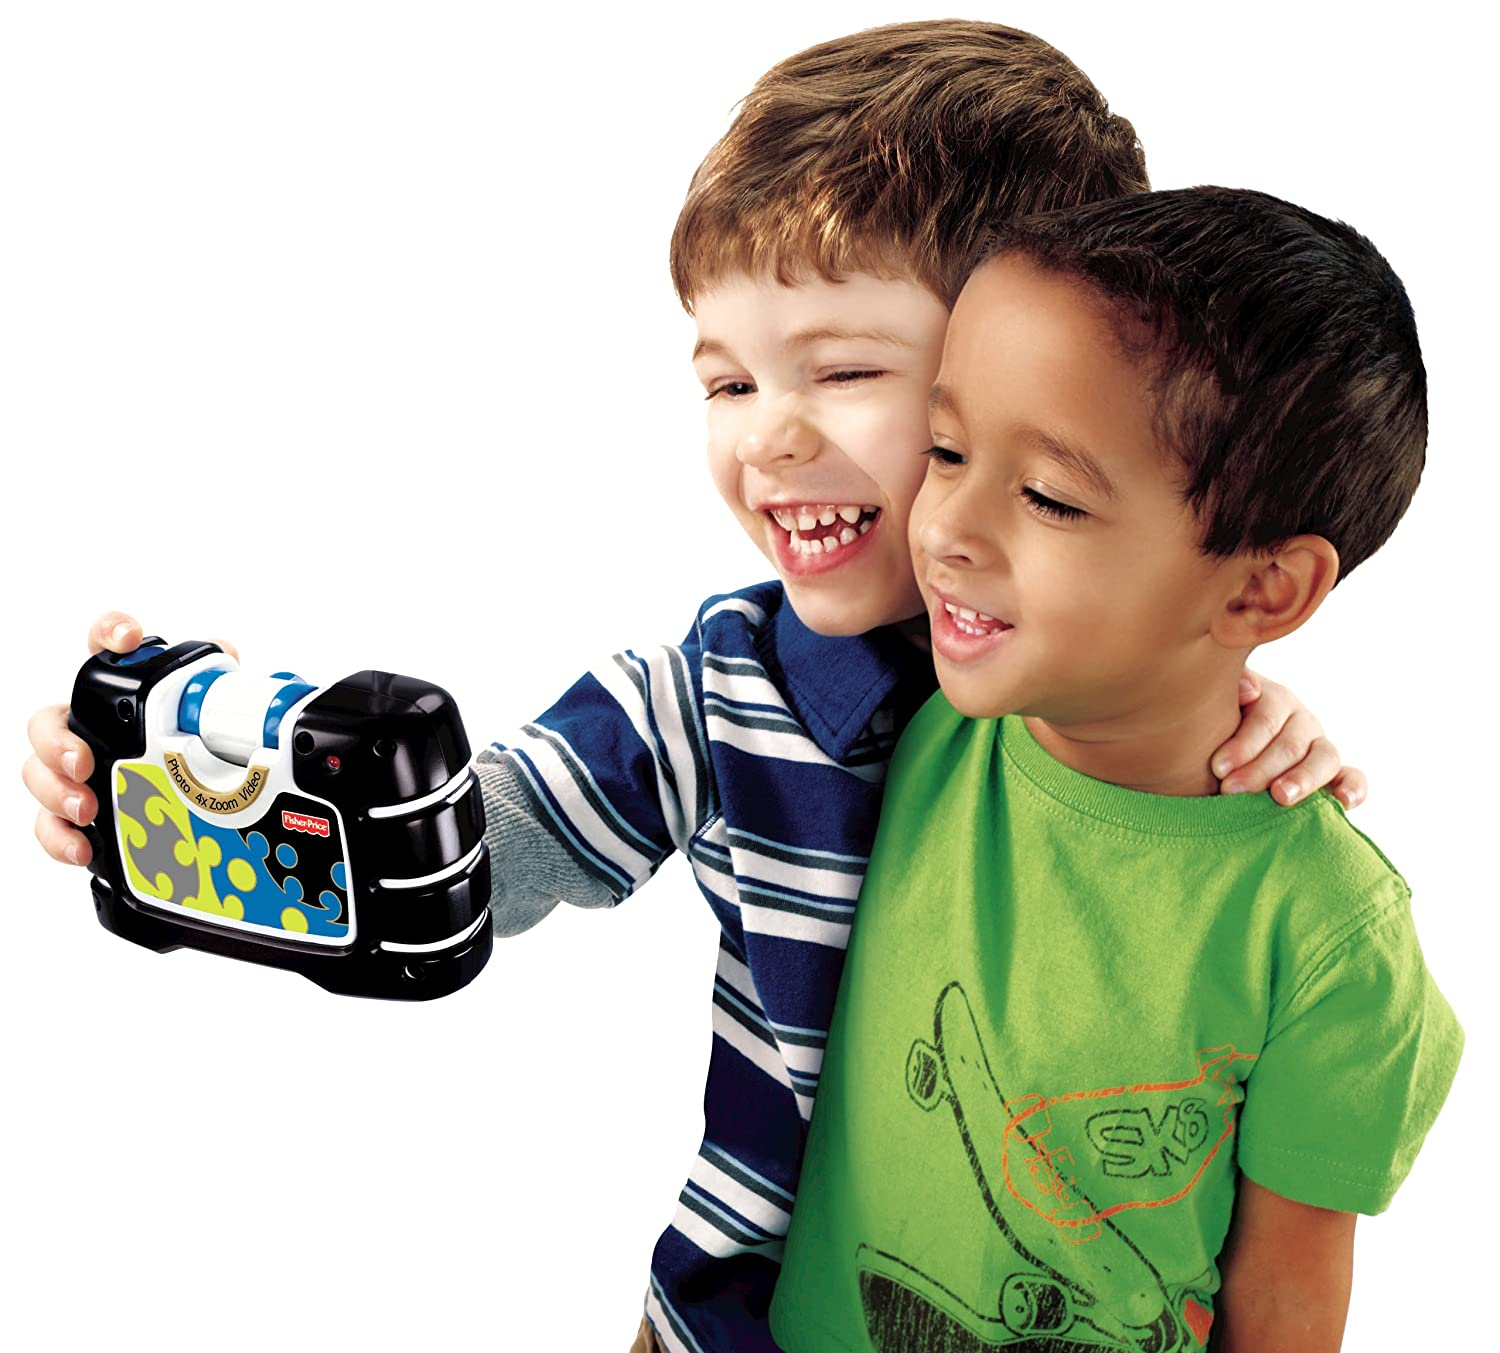 Amazon.com: Fisher-Price Kid-Tough See Yourself Camera, Black: Toys & Games